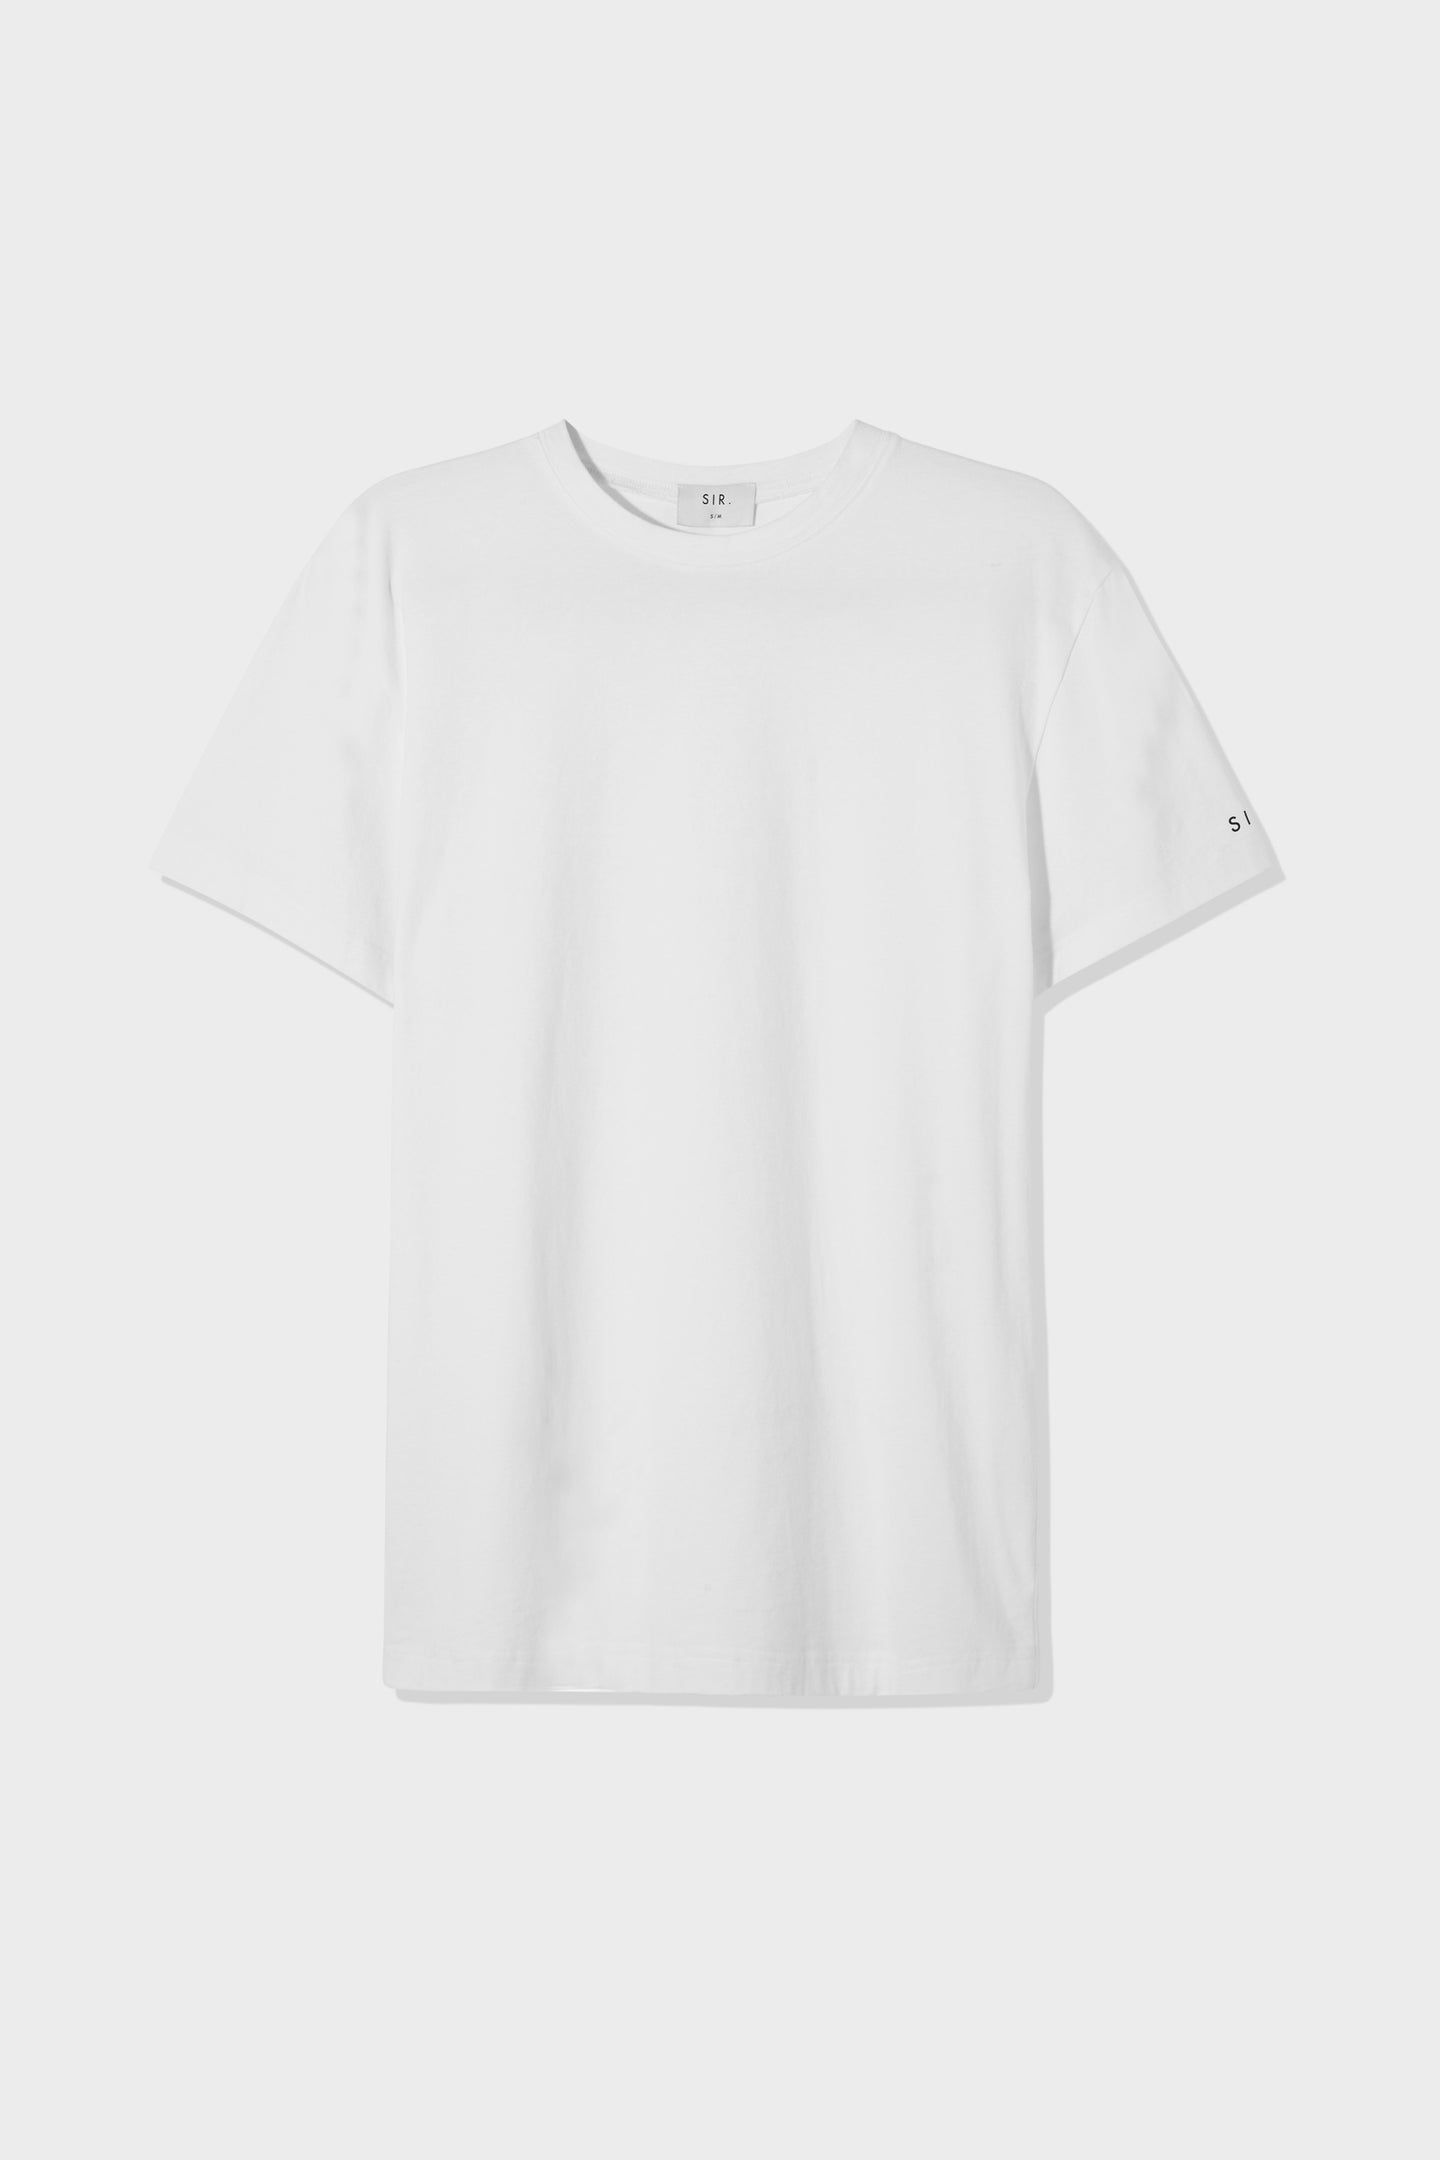 SIR the label UNISEX TEE WHITE